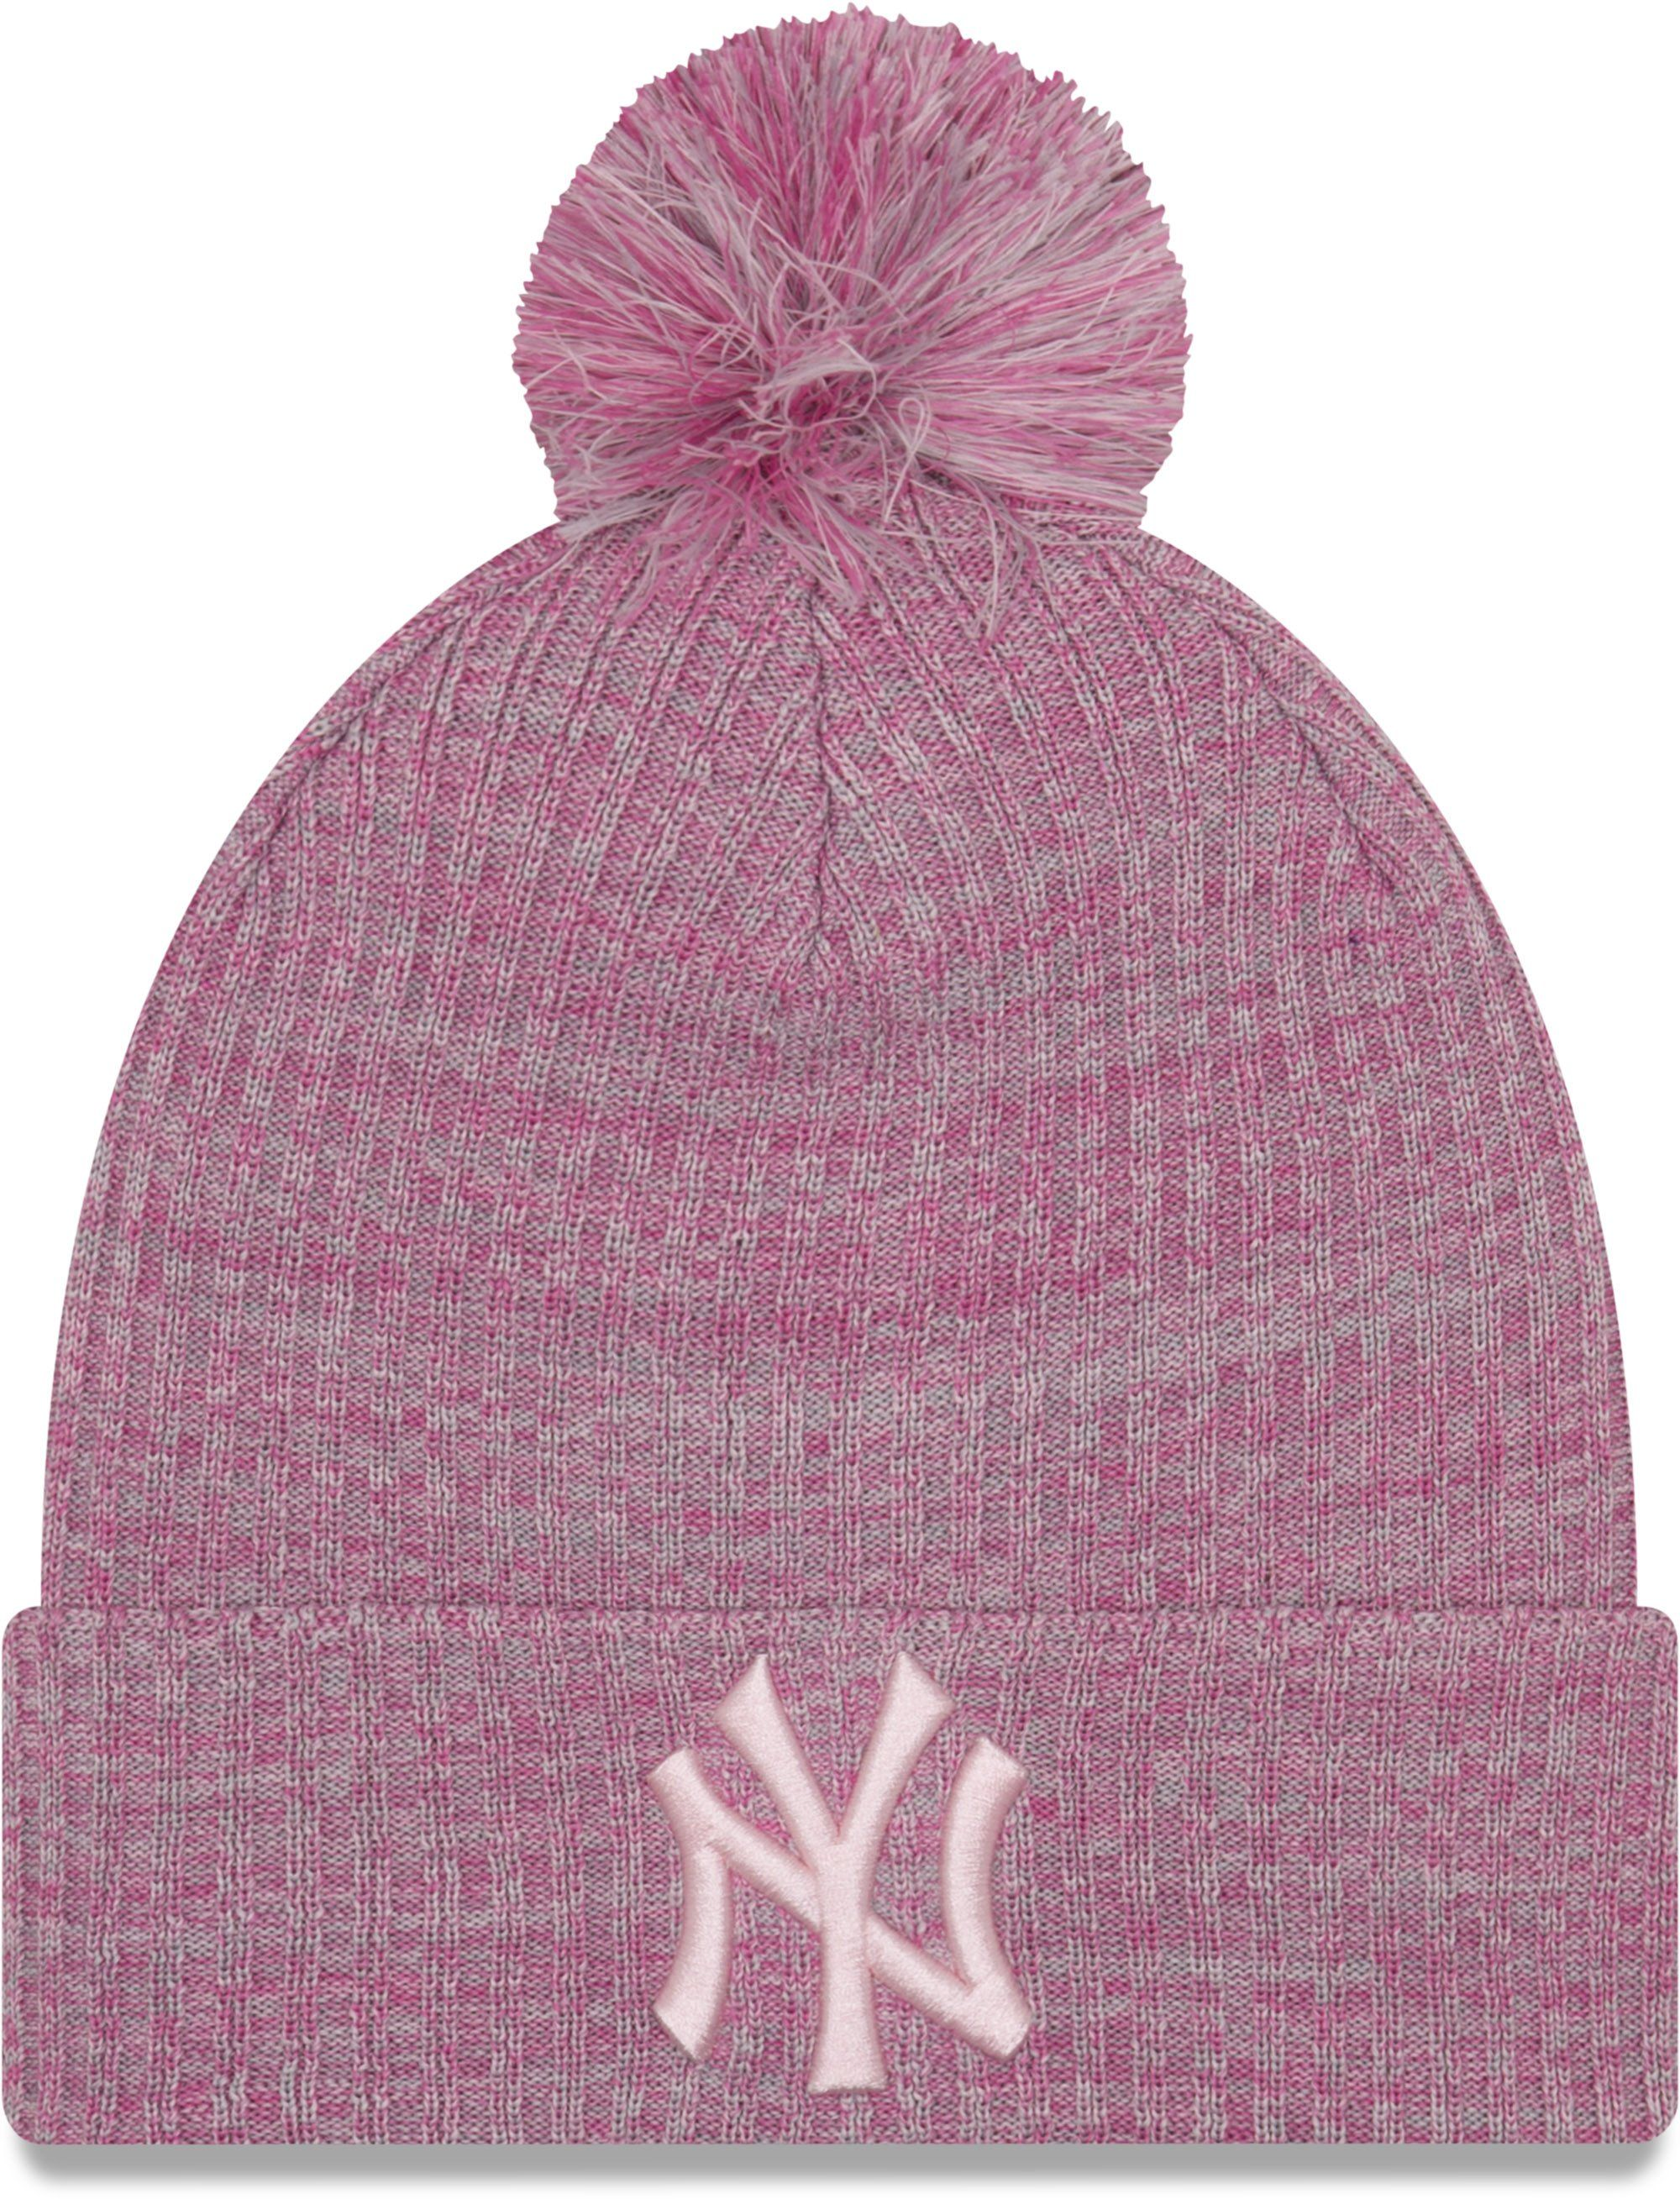 538c867f03d8cc NY Yankees Womens New Era Engineered Fit Knit Bobble Hat – lovemycap ...